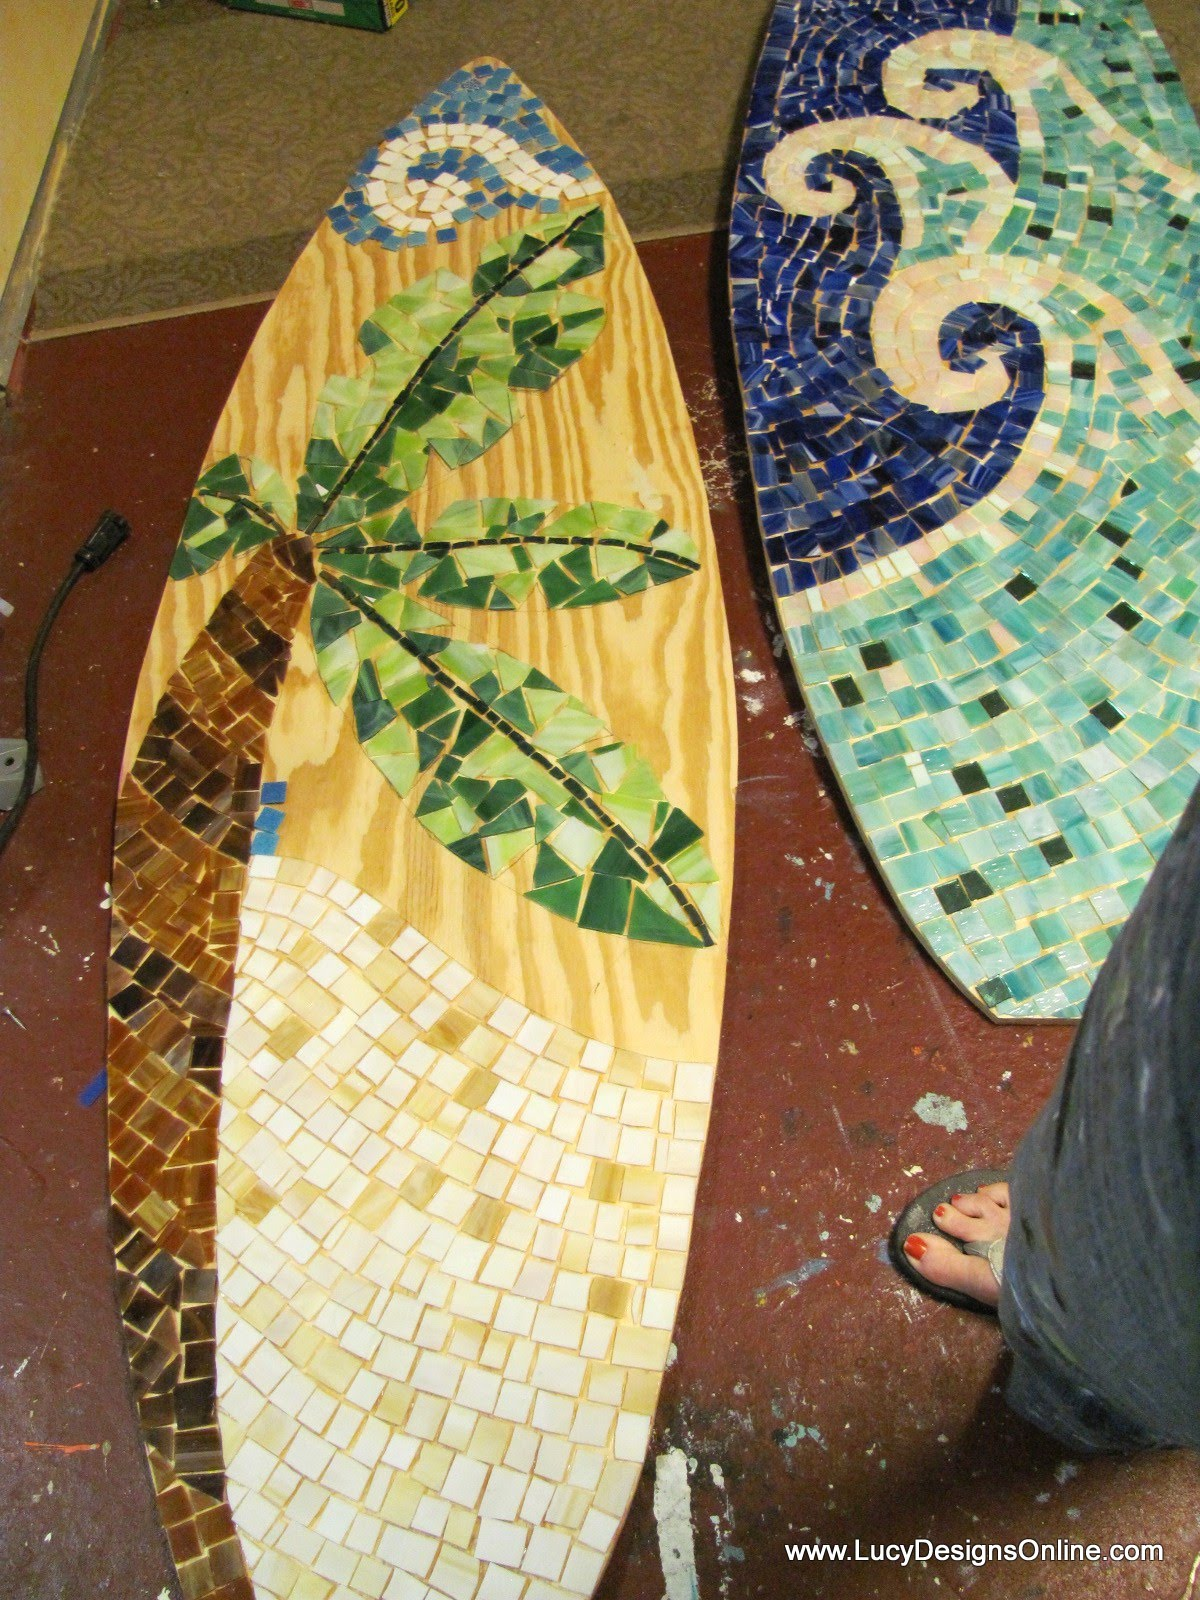 stained glass mosaic surfboards